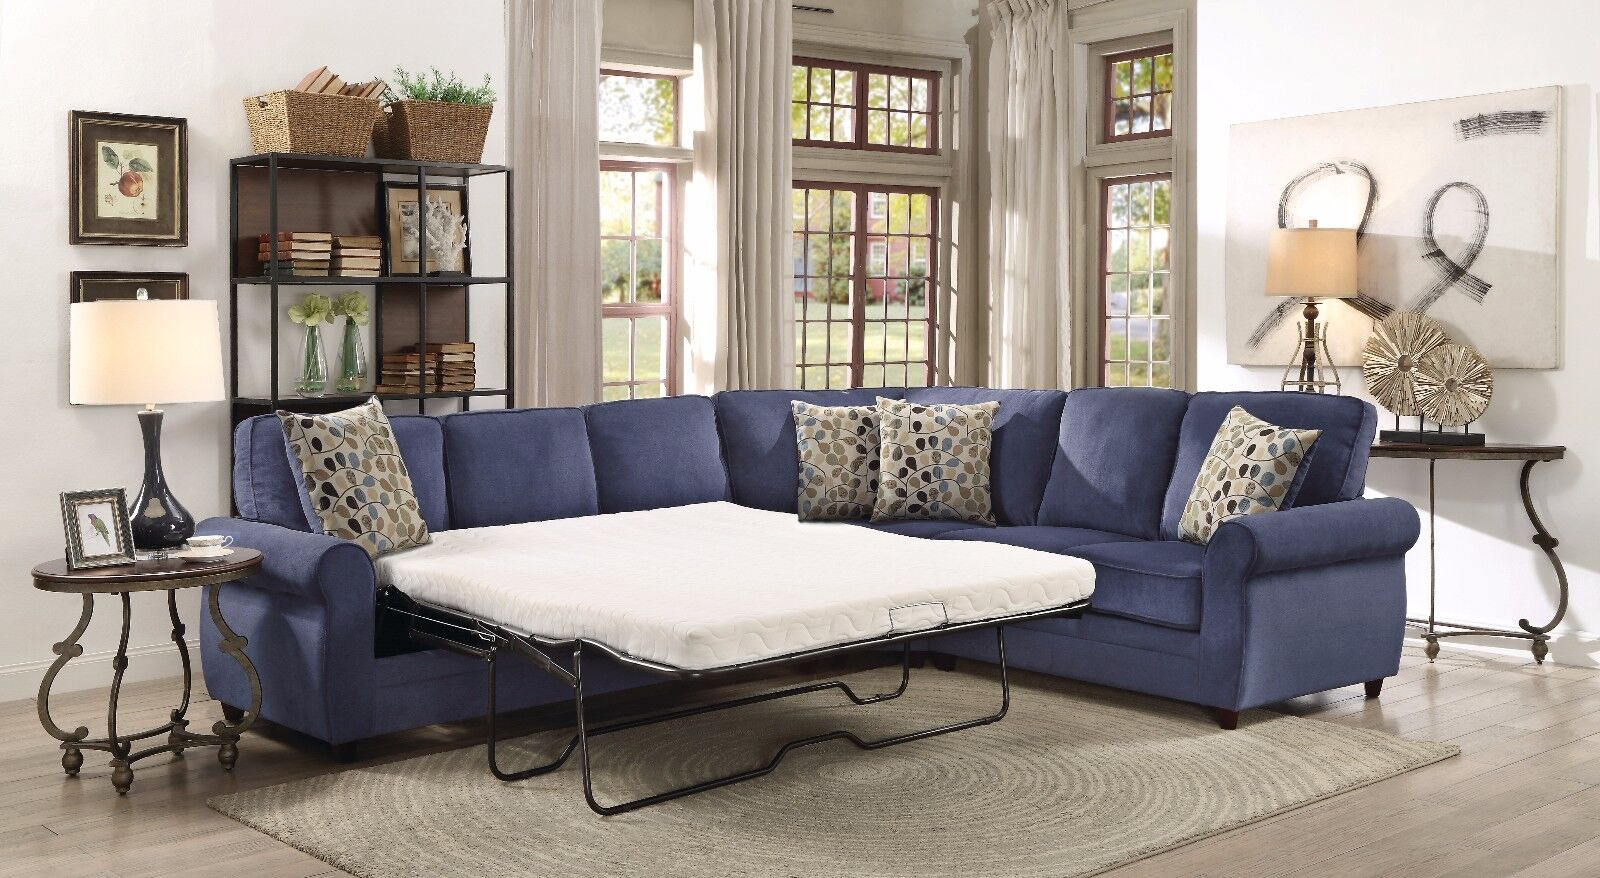 BLUE CHENILLE QUEEN SLEEPER SOFA SECTIONAL LIVING ROOM FURNI